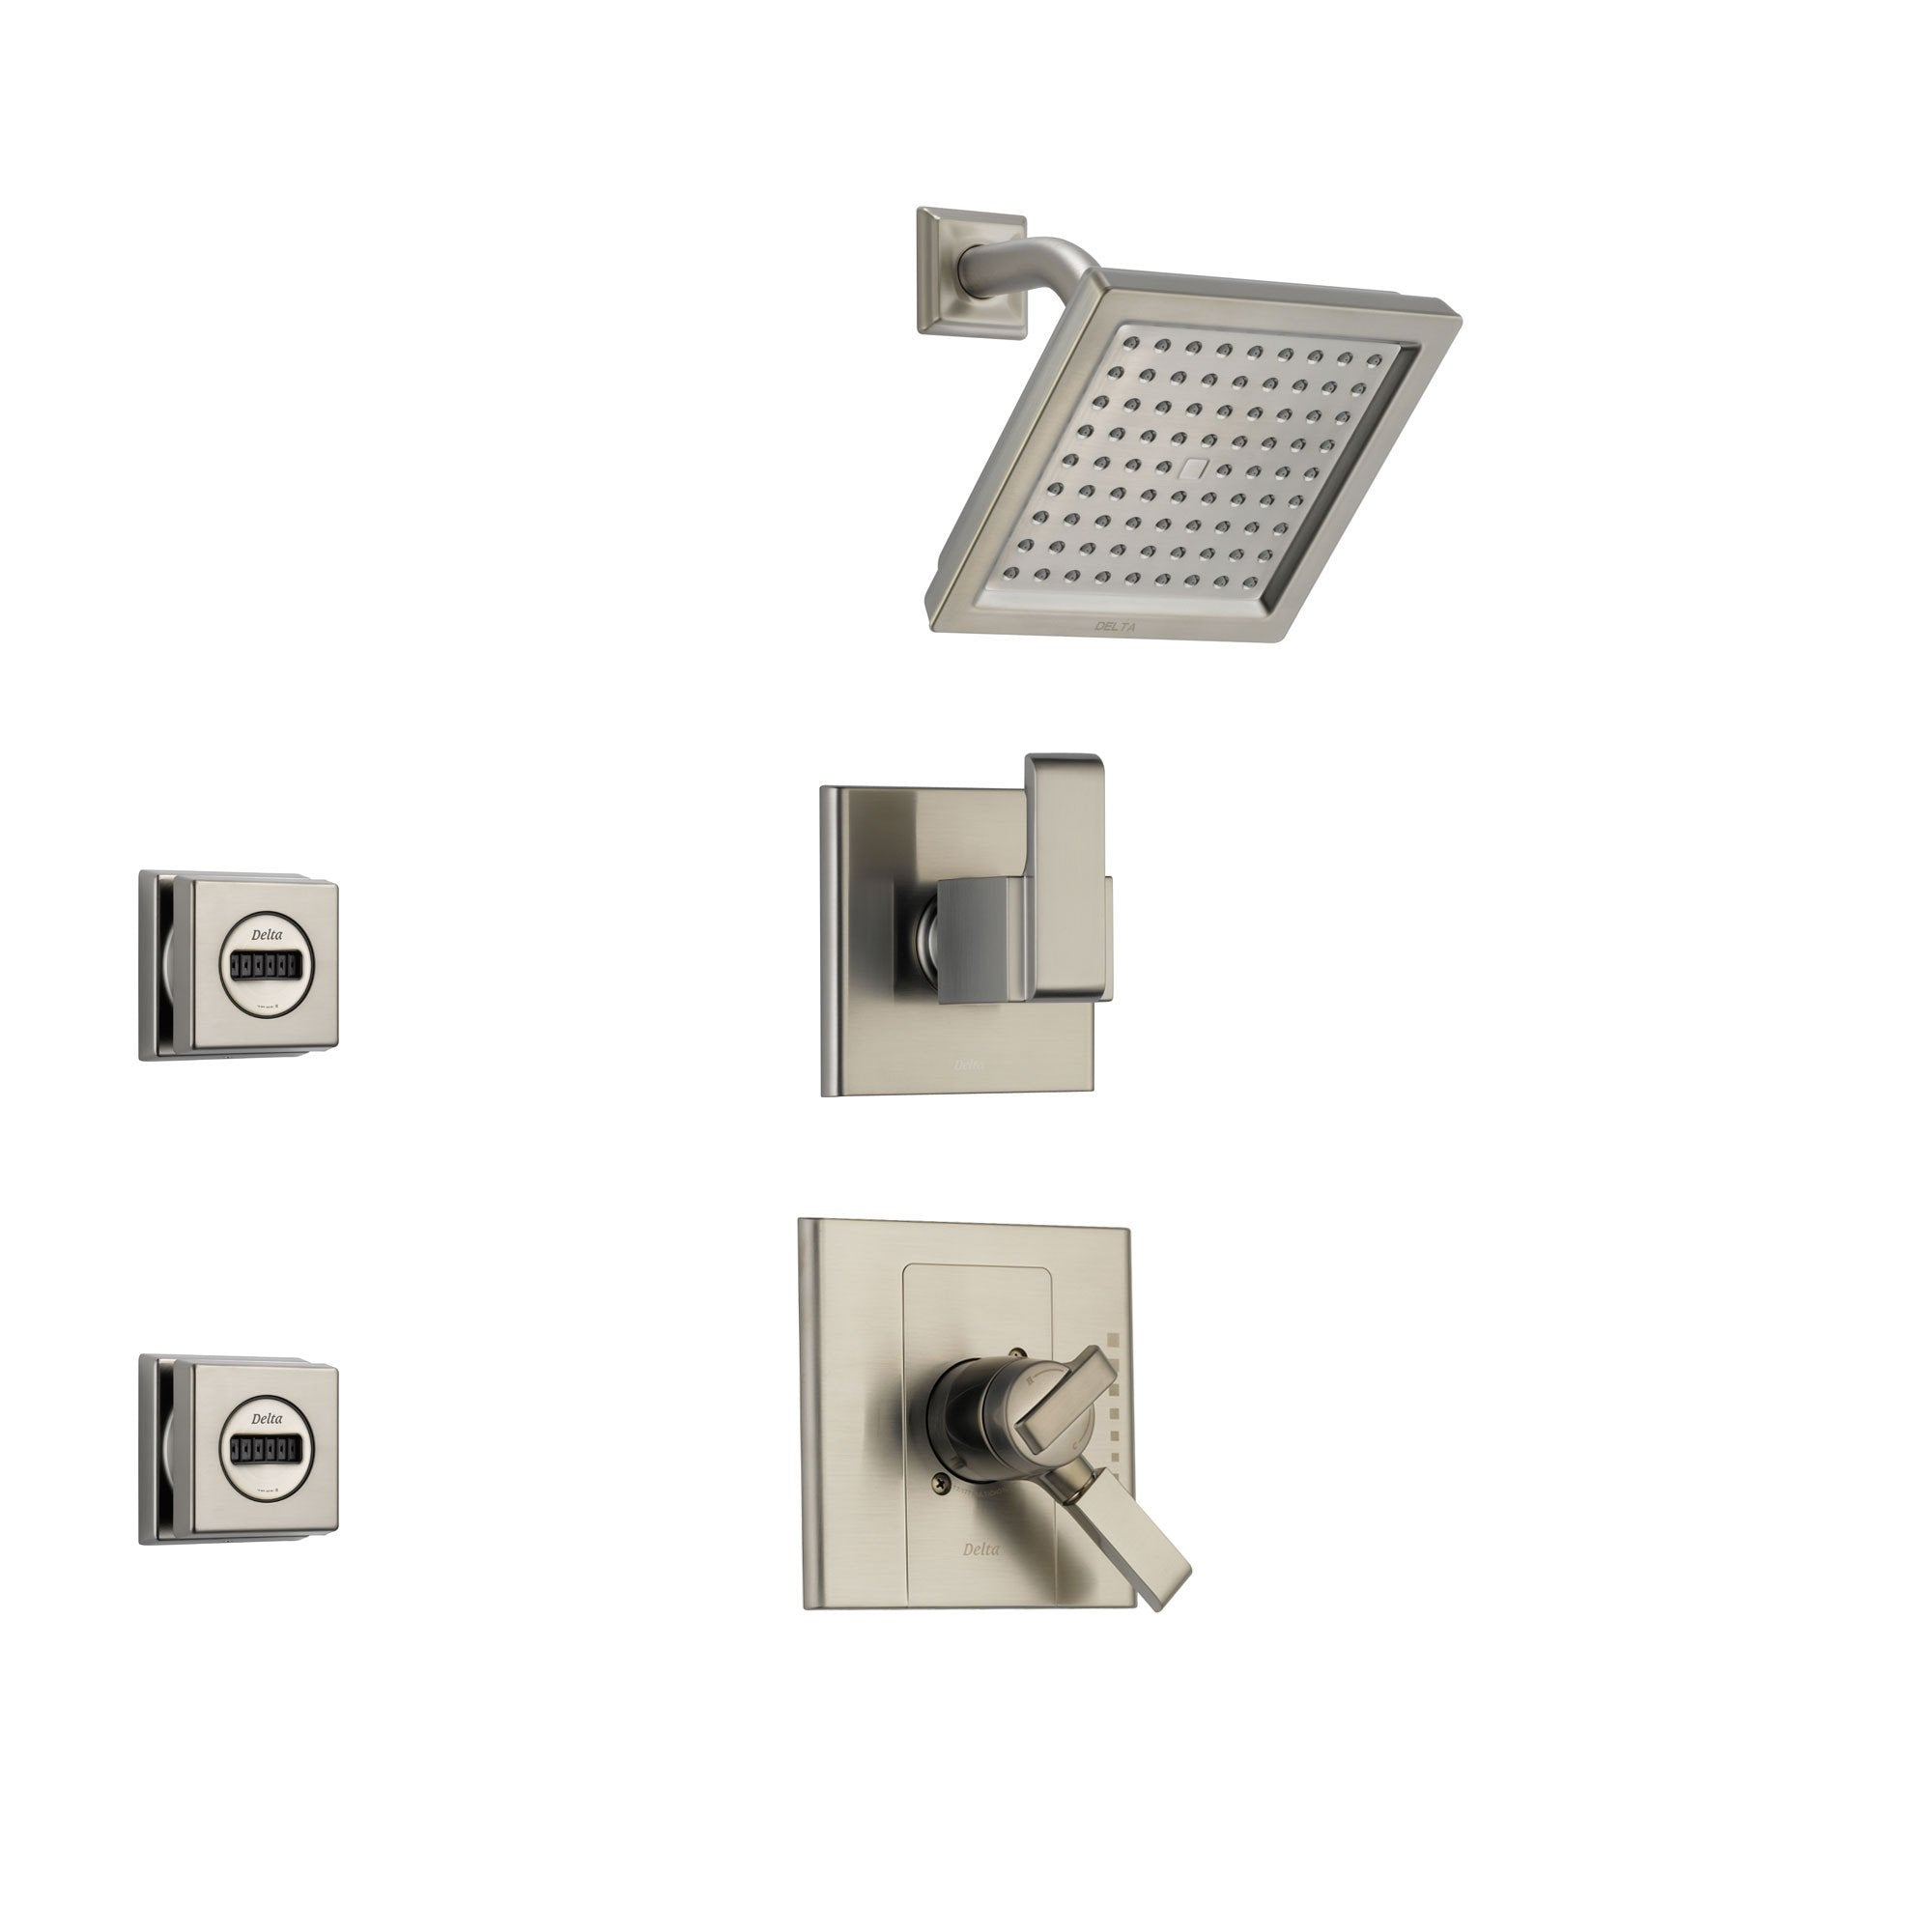 Delta Arzo Stainless Steel Shower System with Dual Control Shower Handle, 3-setting Diverter, Square Showerhead, and 2 Modern Body Sprays SS178685SS